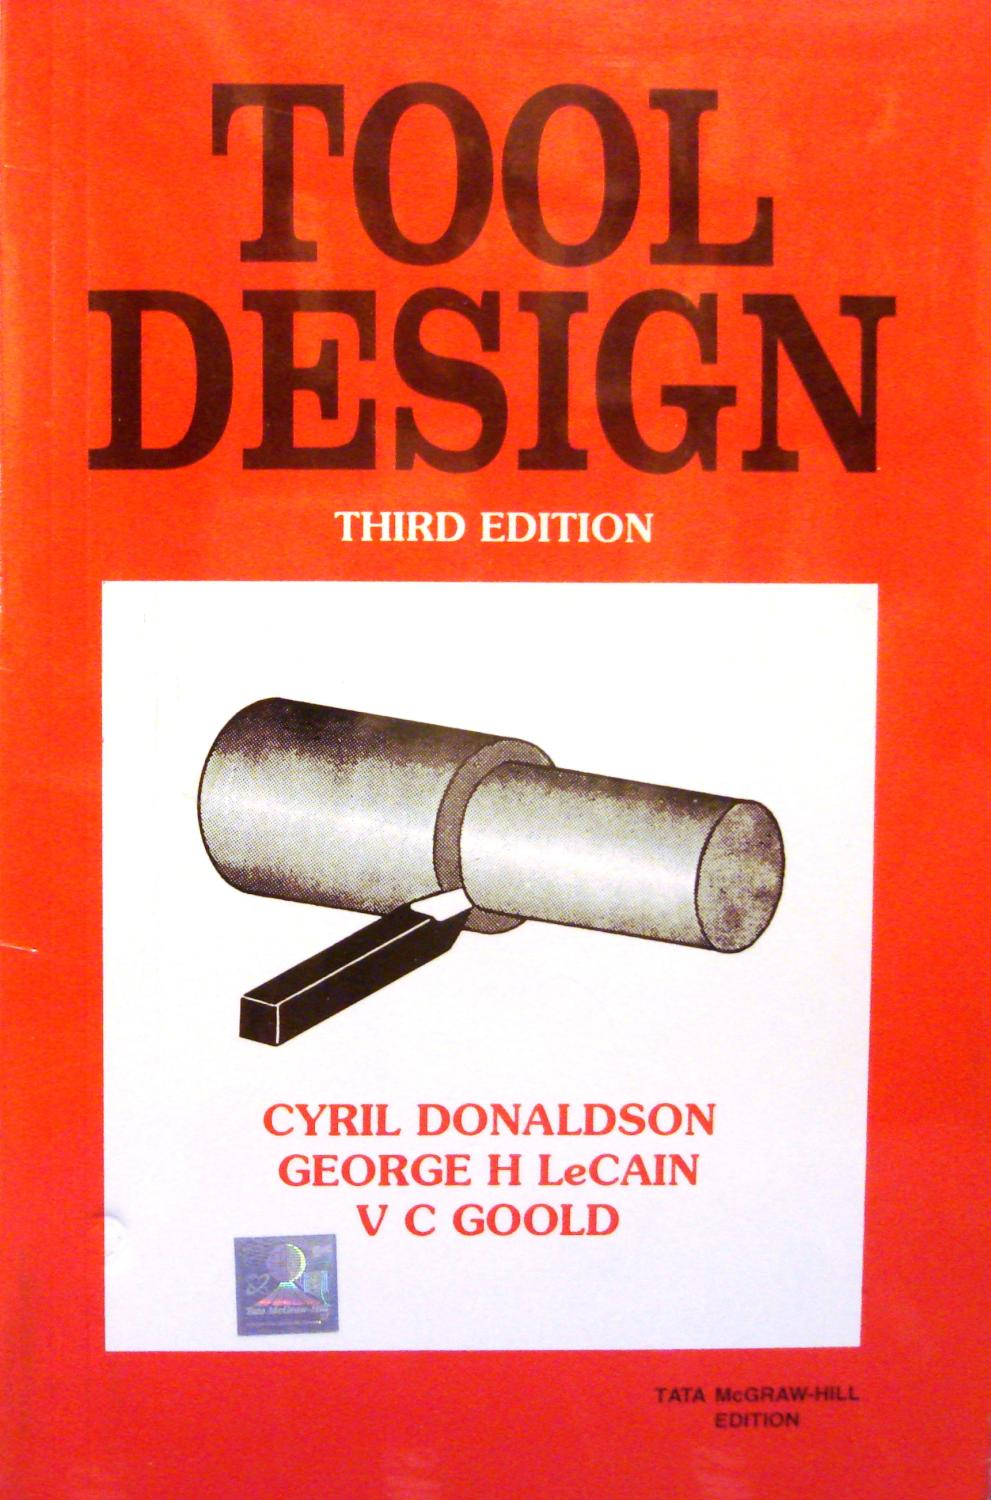 Book Cover Design Tool : Tool design by donaldson lecain goold mcgraw hill